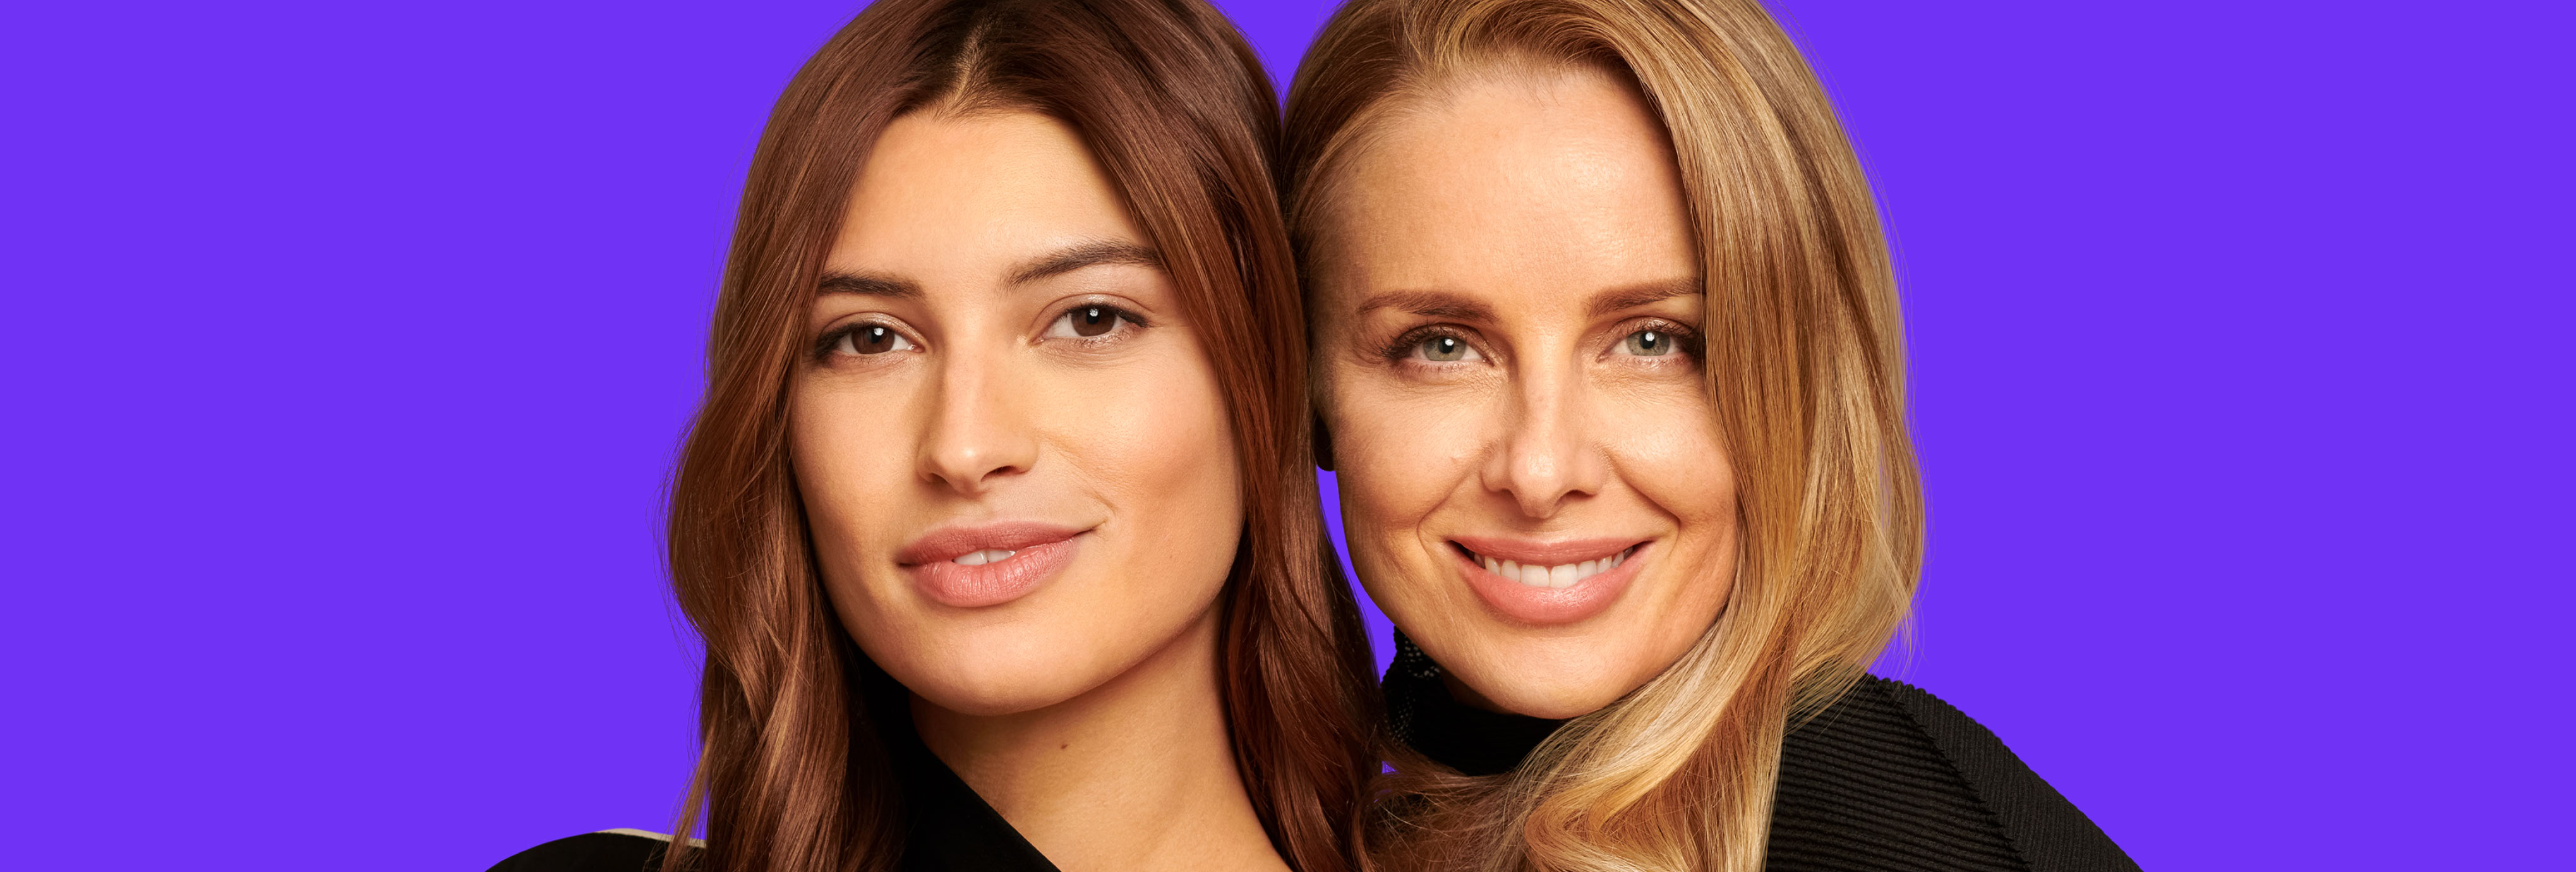 Juvederm | Brunette female model